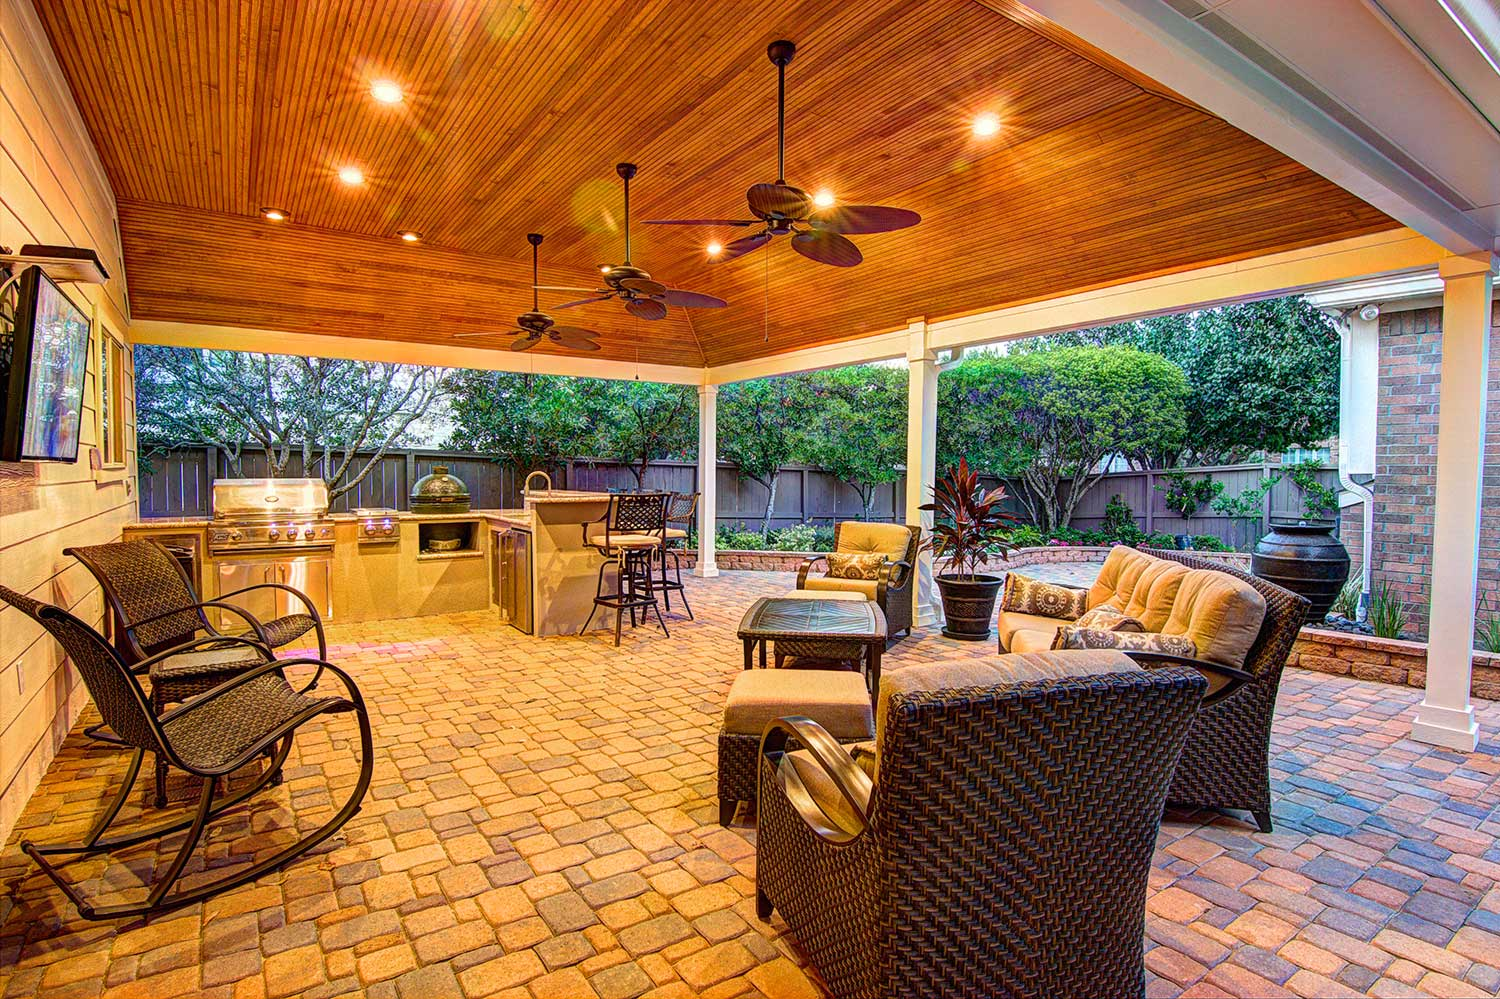 Tongue and Grove Patio Cover plus Outdoor Kitchen - HHI ... on Backyard Patio Cover  id=26550